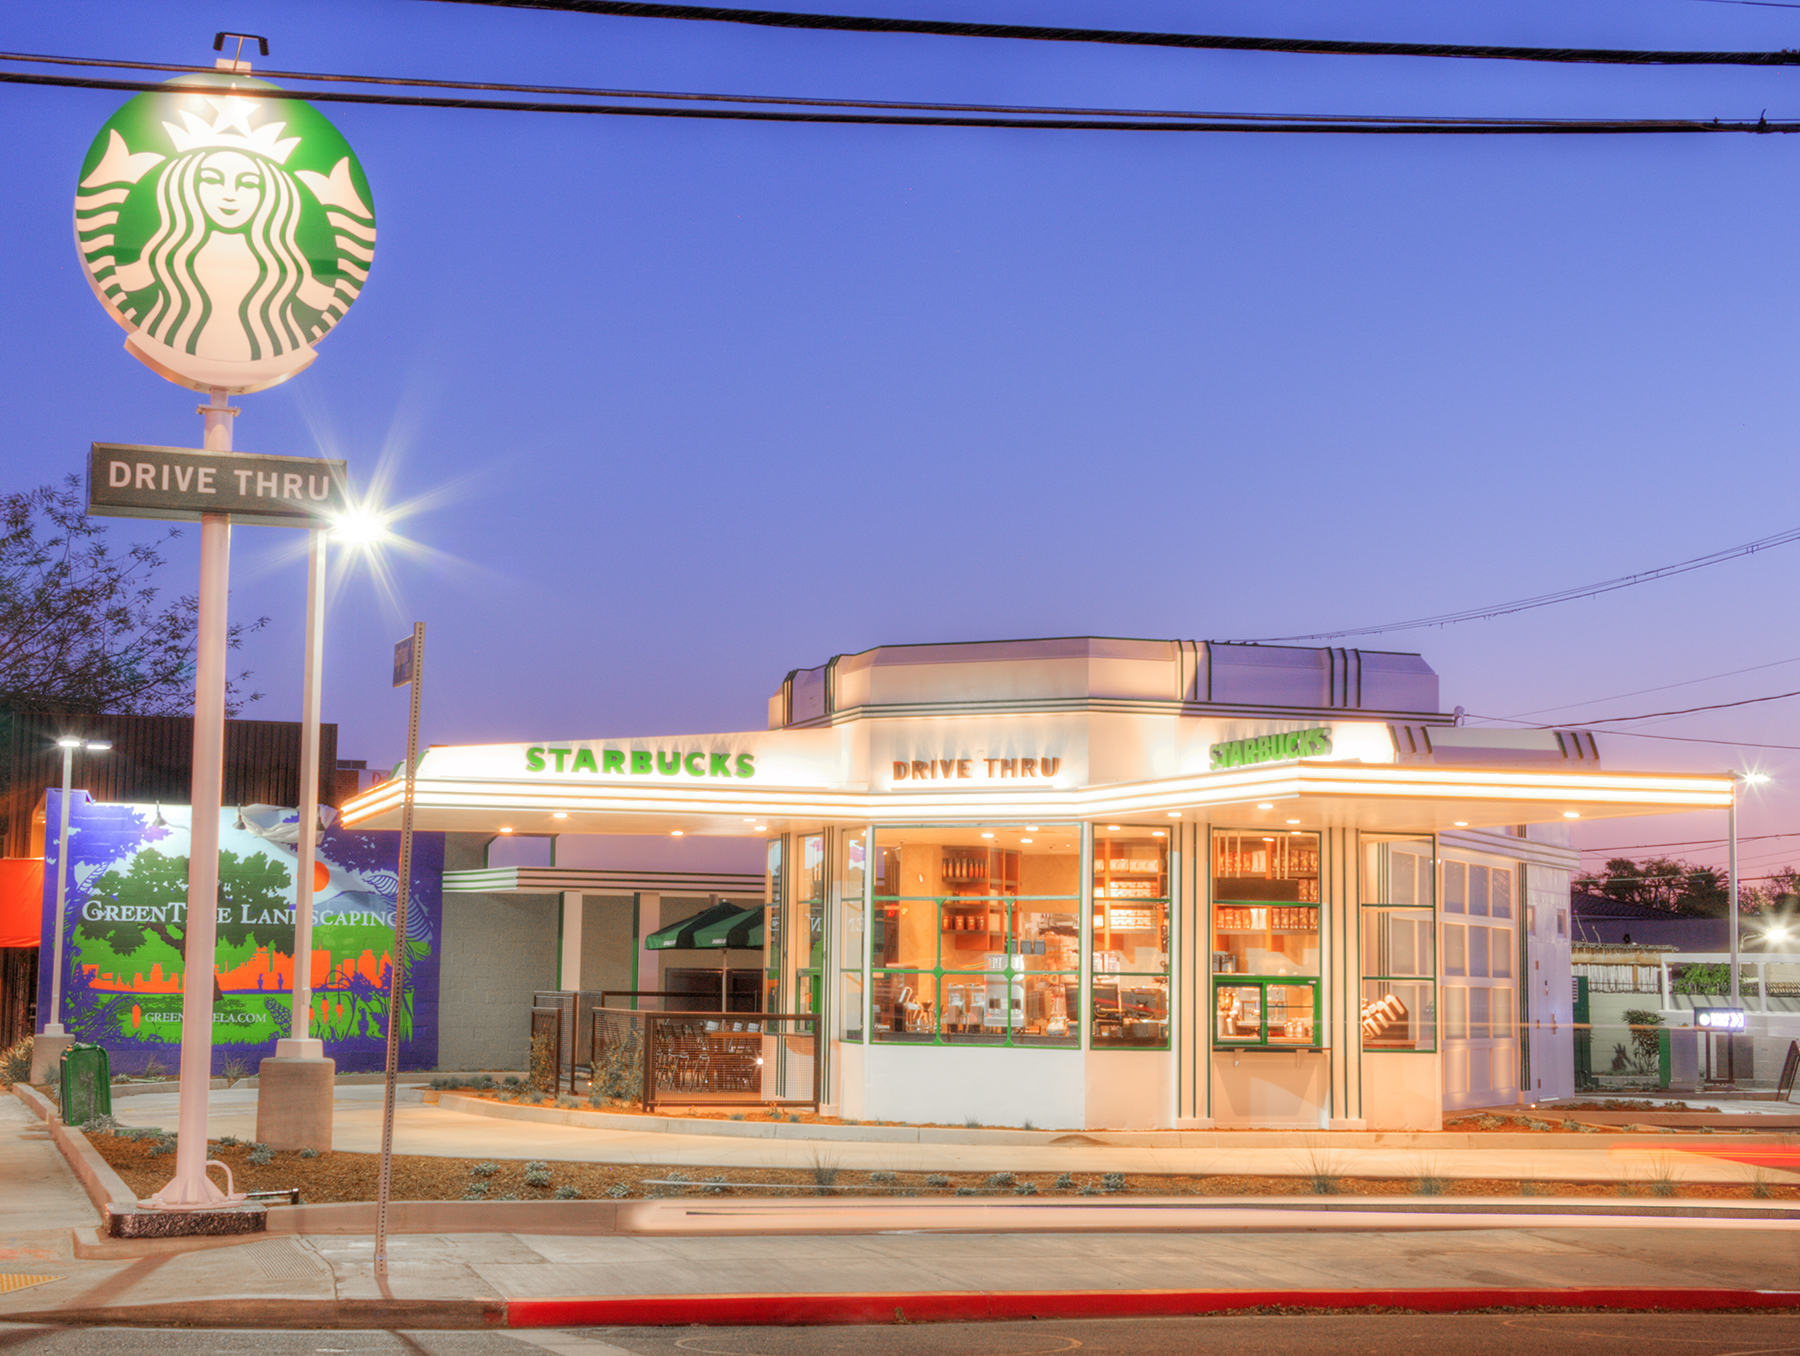 Gilmore Gas Station rehabilitated and converted into a Starbucks